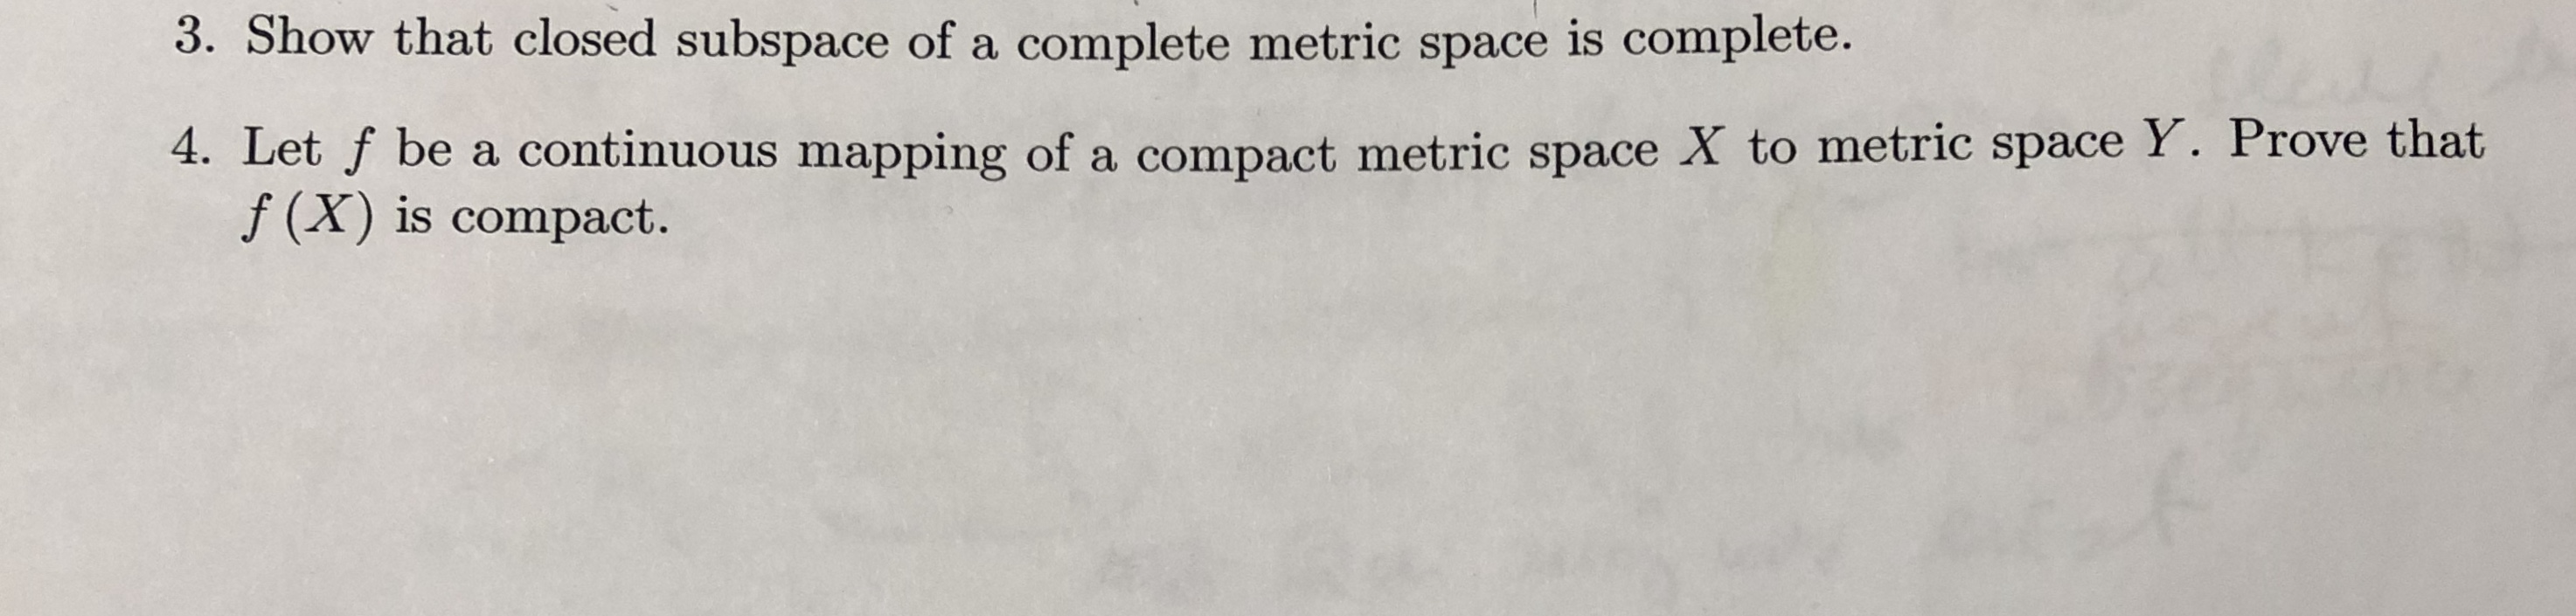 3. Show that closed subspace of a complete metric space is complete. 4. Let f be a continuous mapping of a compact metric space X to metric space Y. Prove that f (X) is compact. A 1S